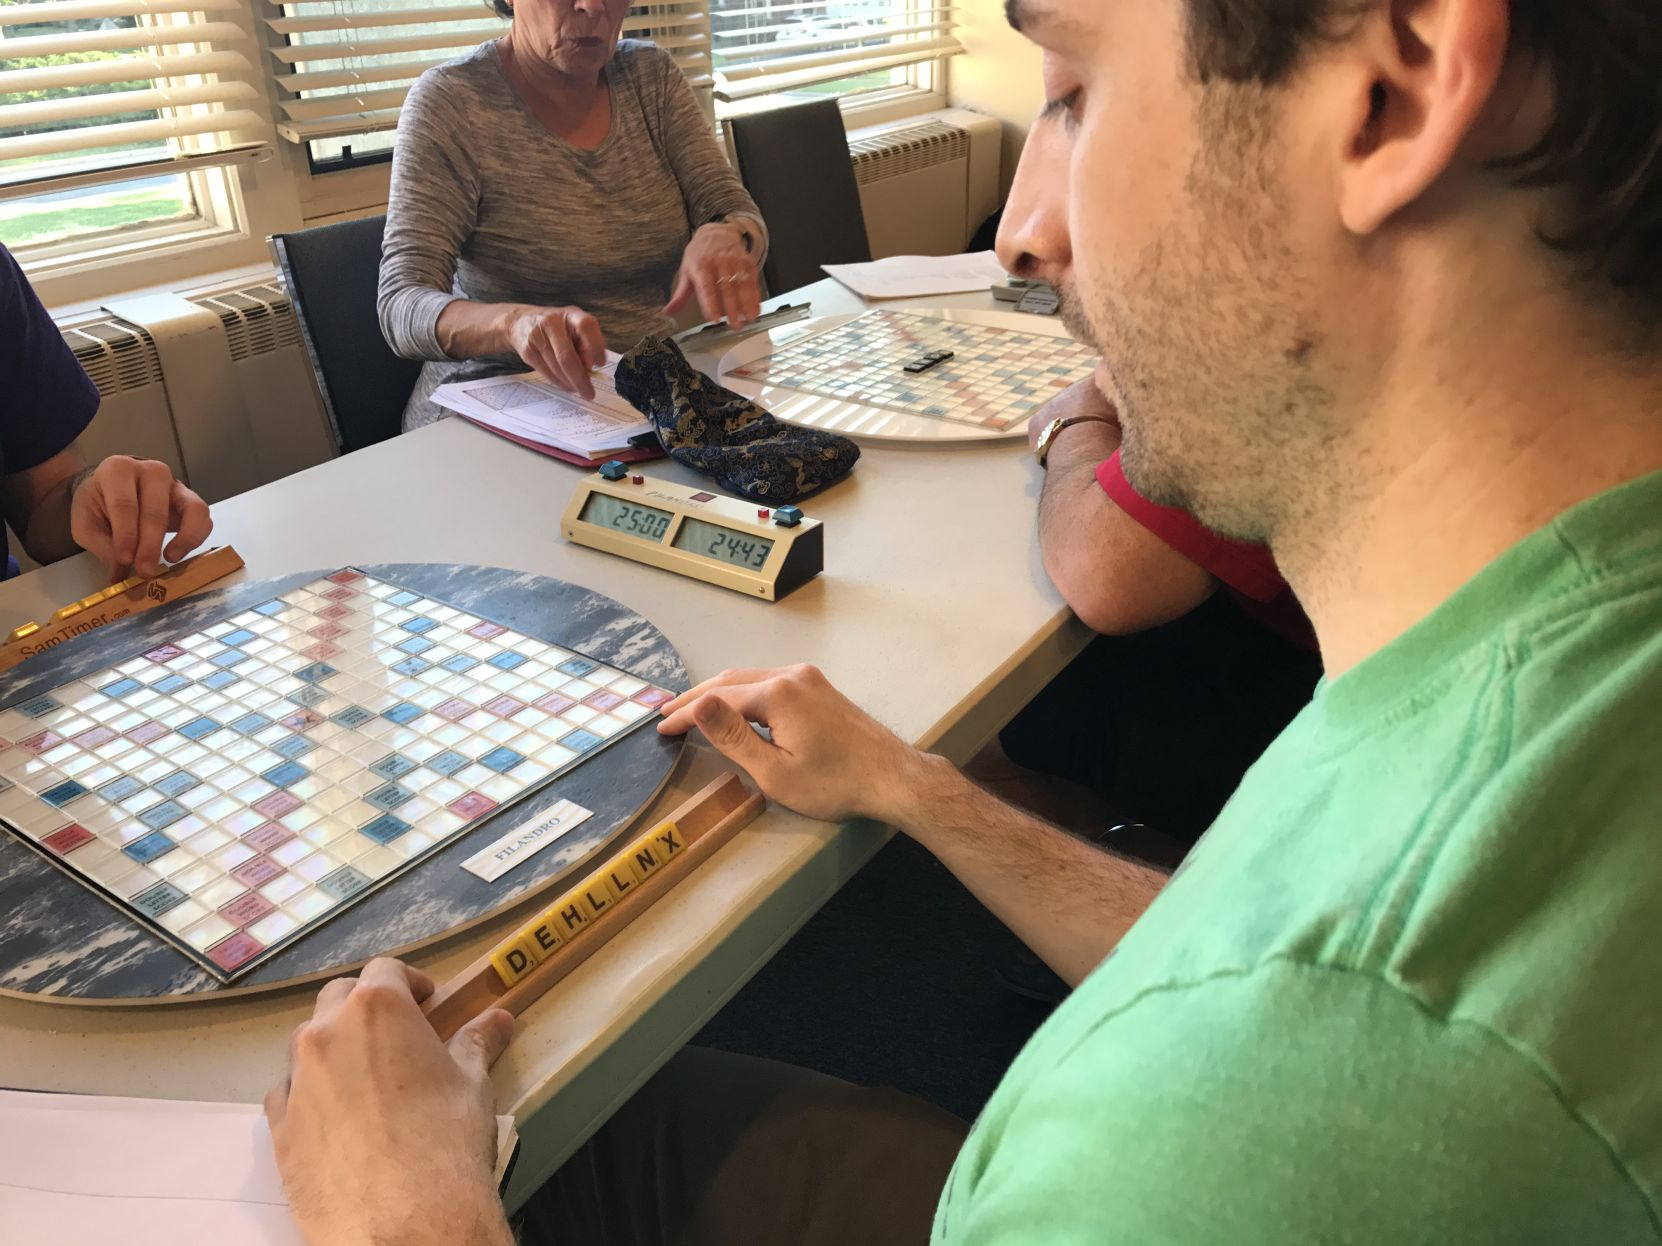 Wordless: Wilmington Scrabble Club gets a visit from national Scrabble champion | WDEL